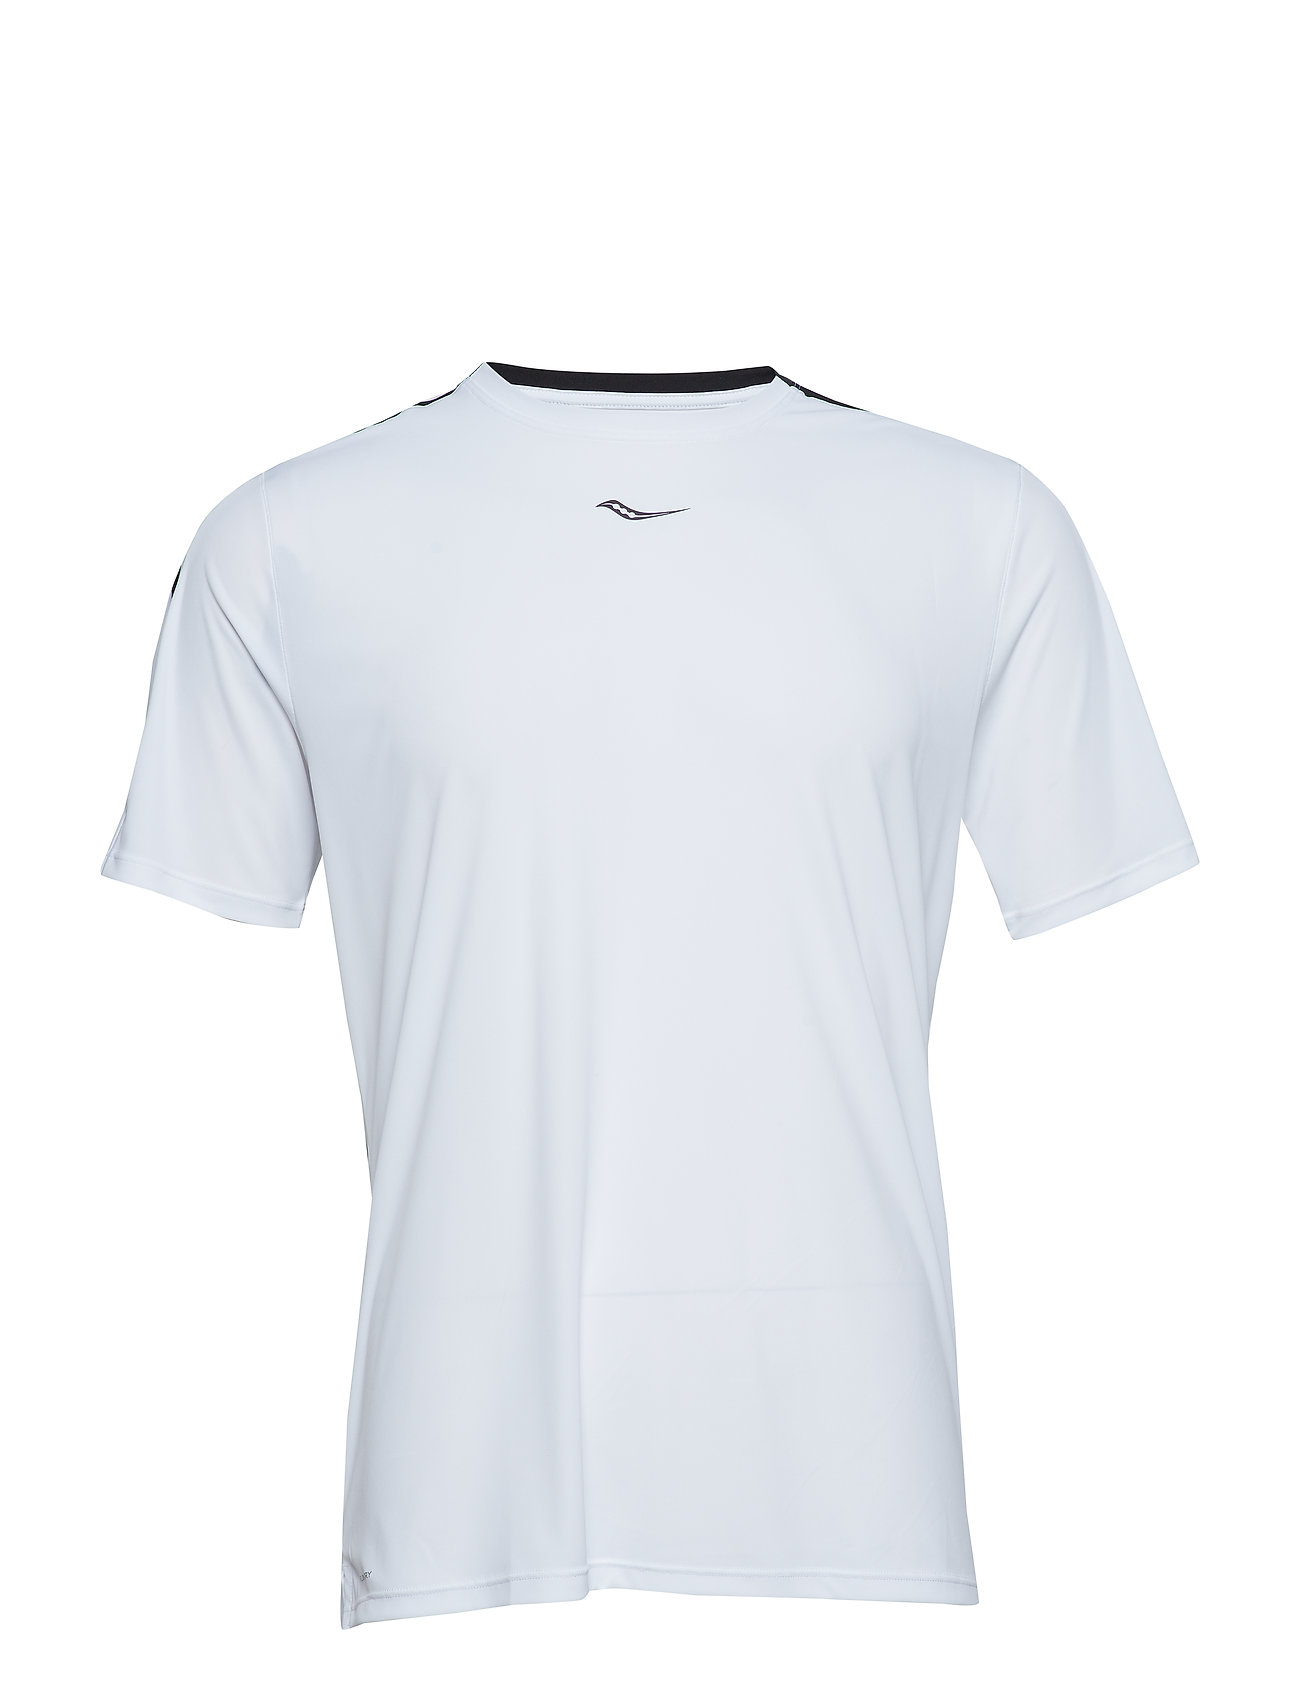 Saucony UV LITE SHORT SLEEVE - WHITE